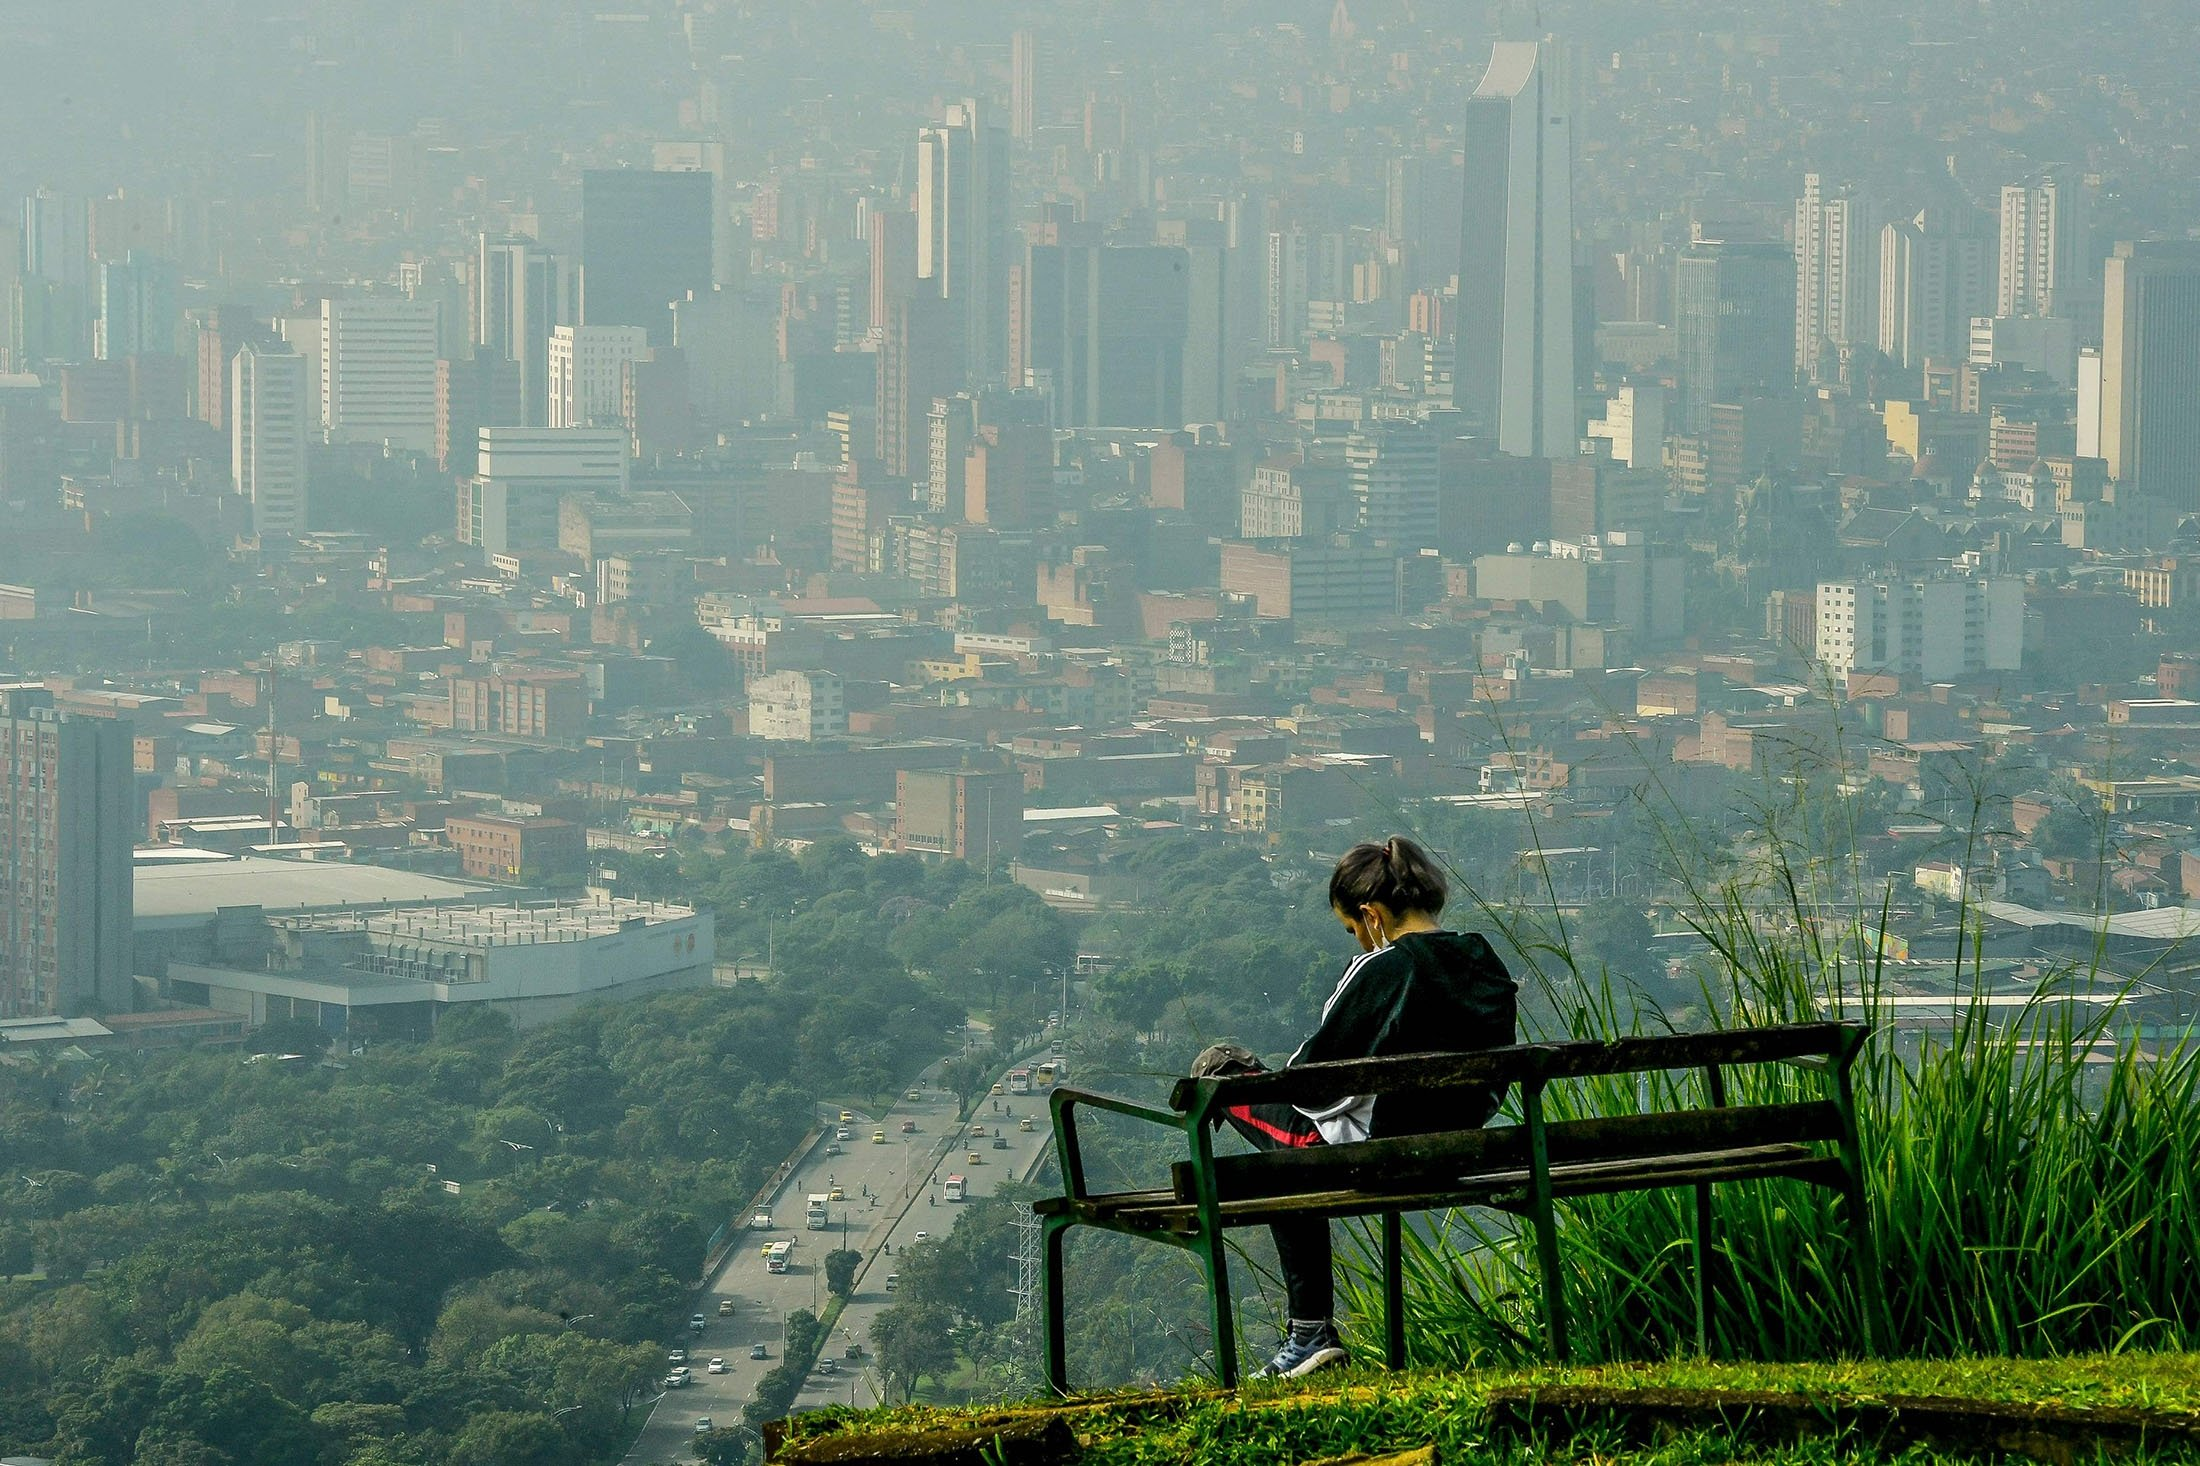 A woman wacthes the view from the Volador hill in Medellin, Colombia, June 12, 2021. (AFP Photo)